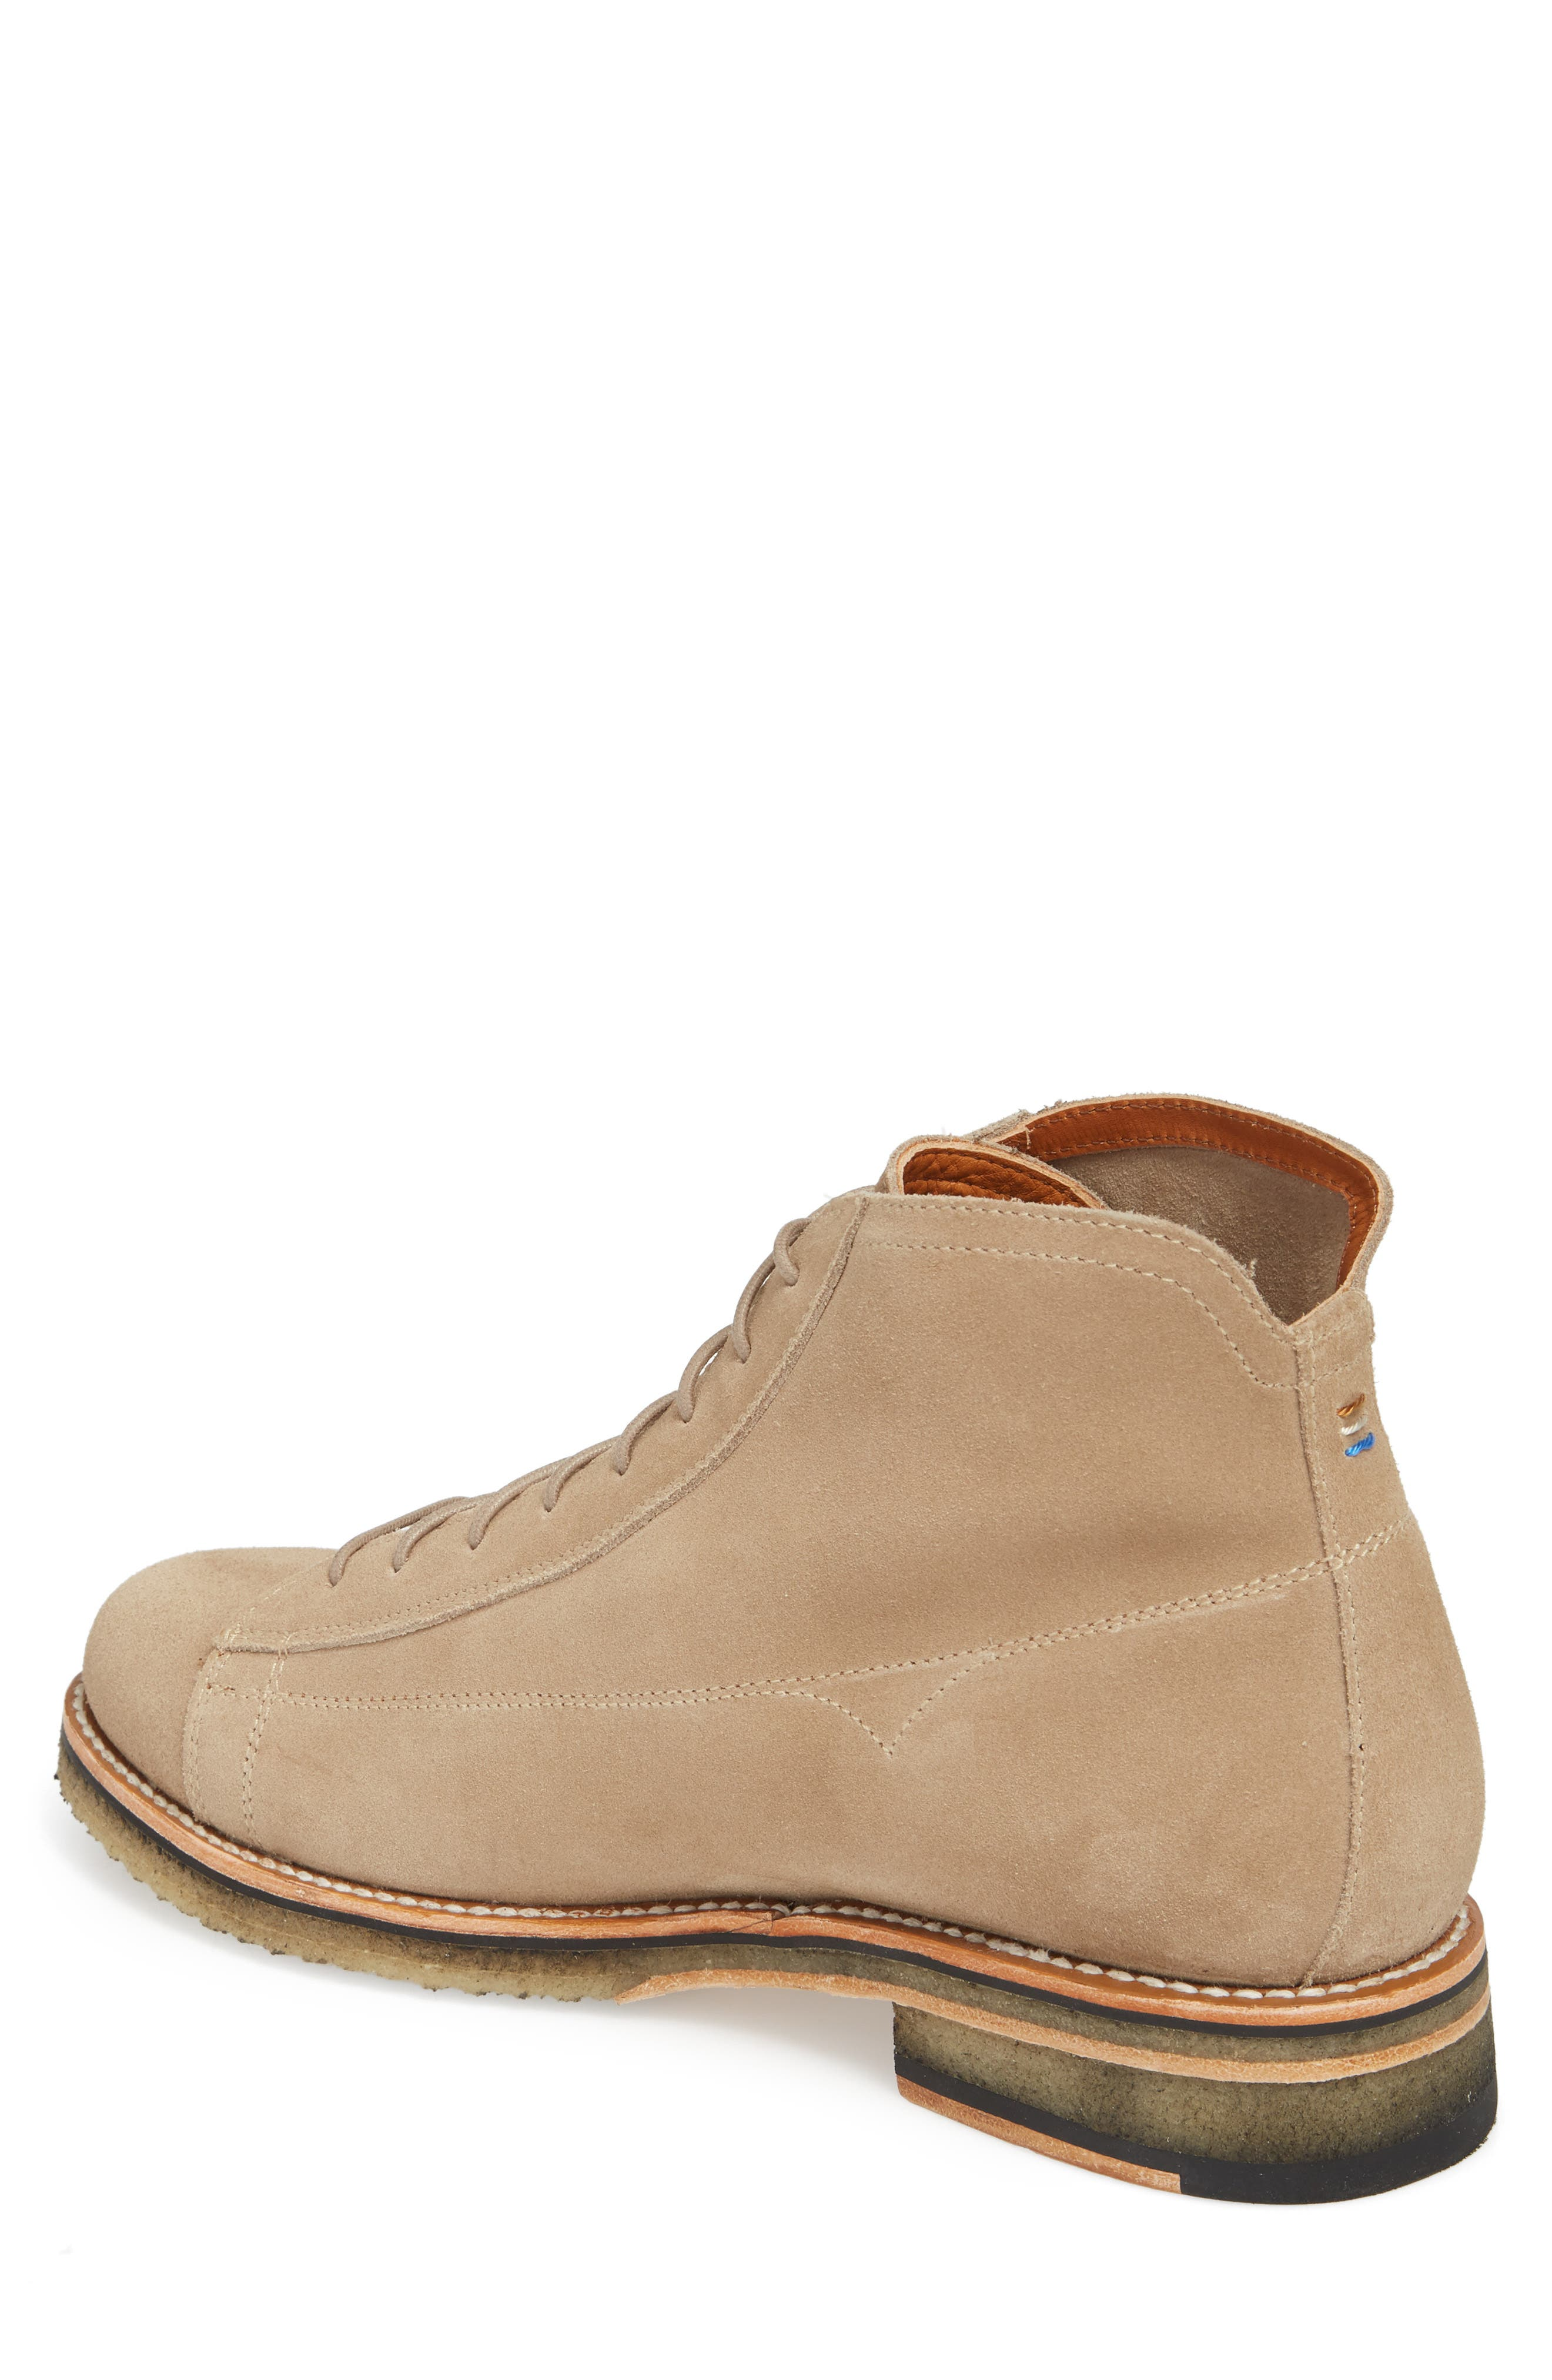 Two24 by Ariat Webster Boot,                             Alternate thumbnail 2, color,                             Biscotti Suede